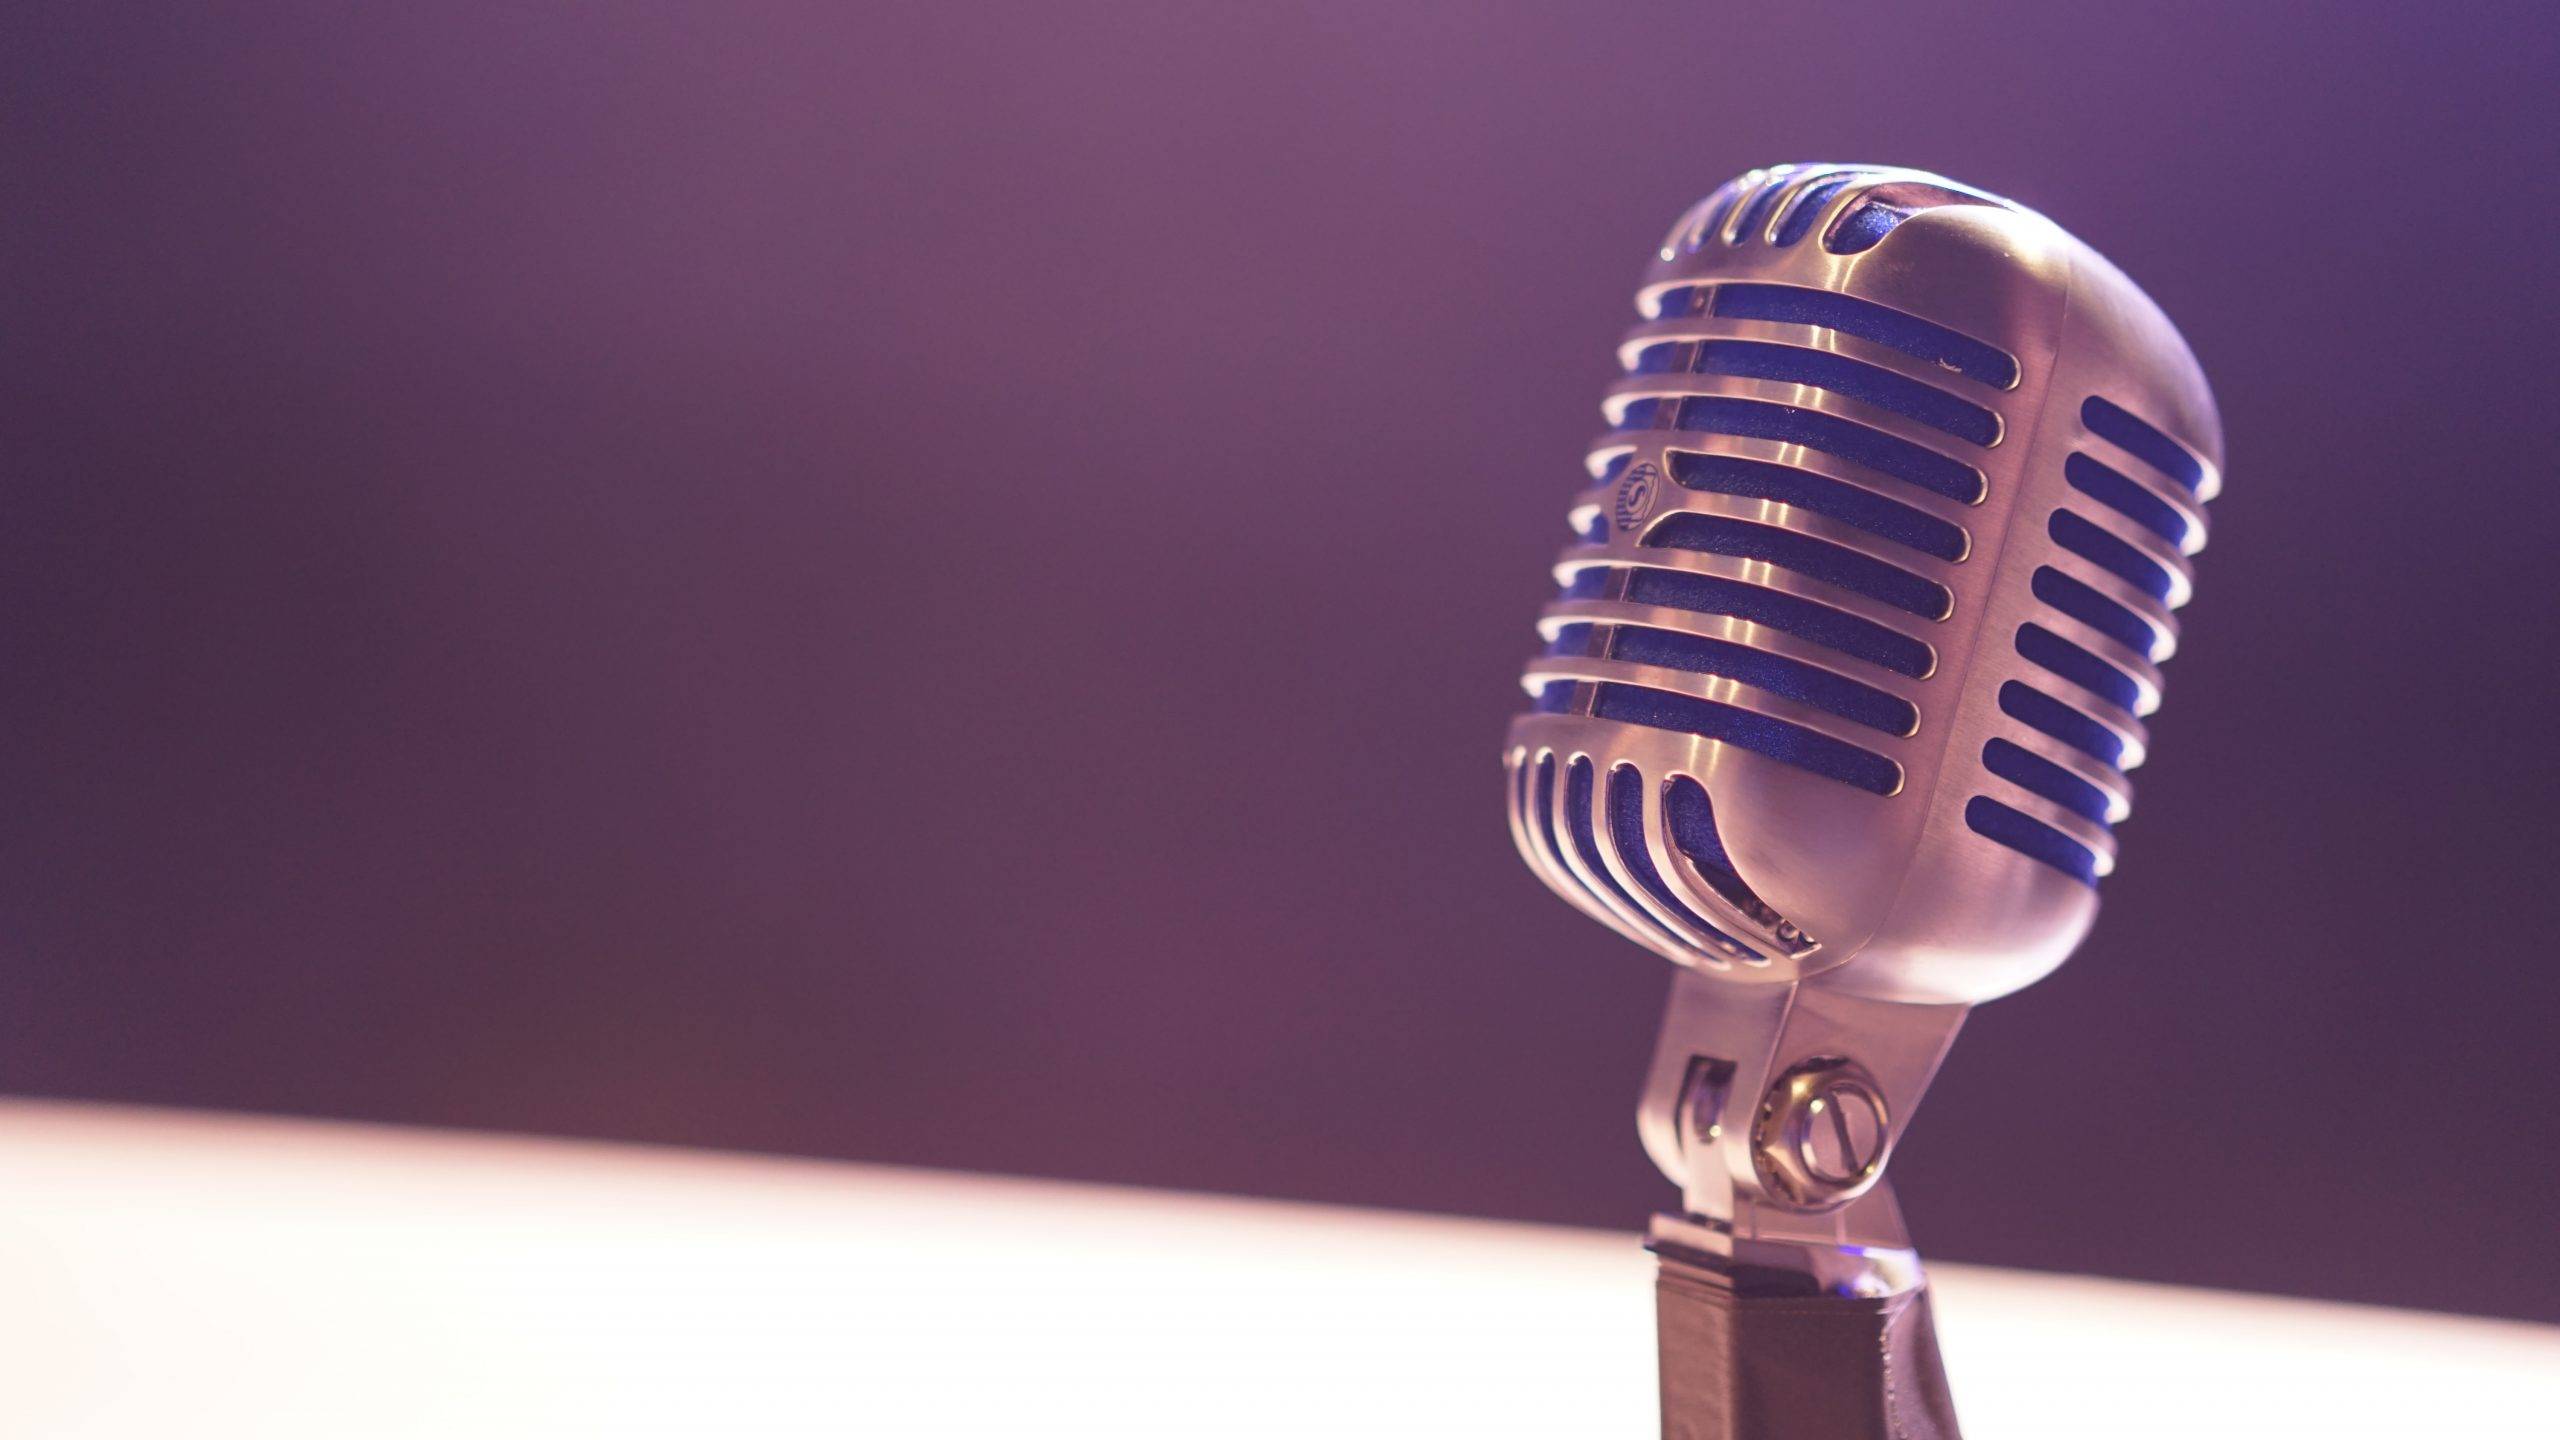 5-1-million-people-listen-to-podcasts-regularly-in-ksa